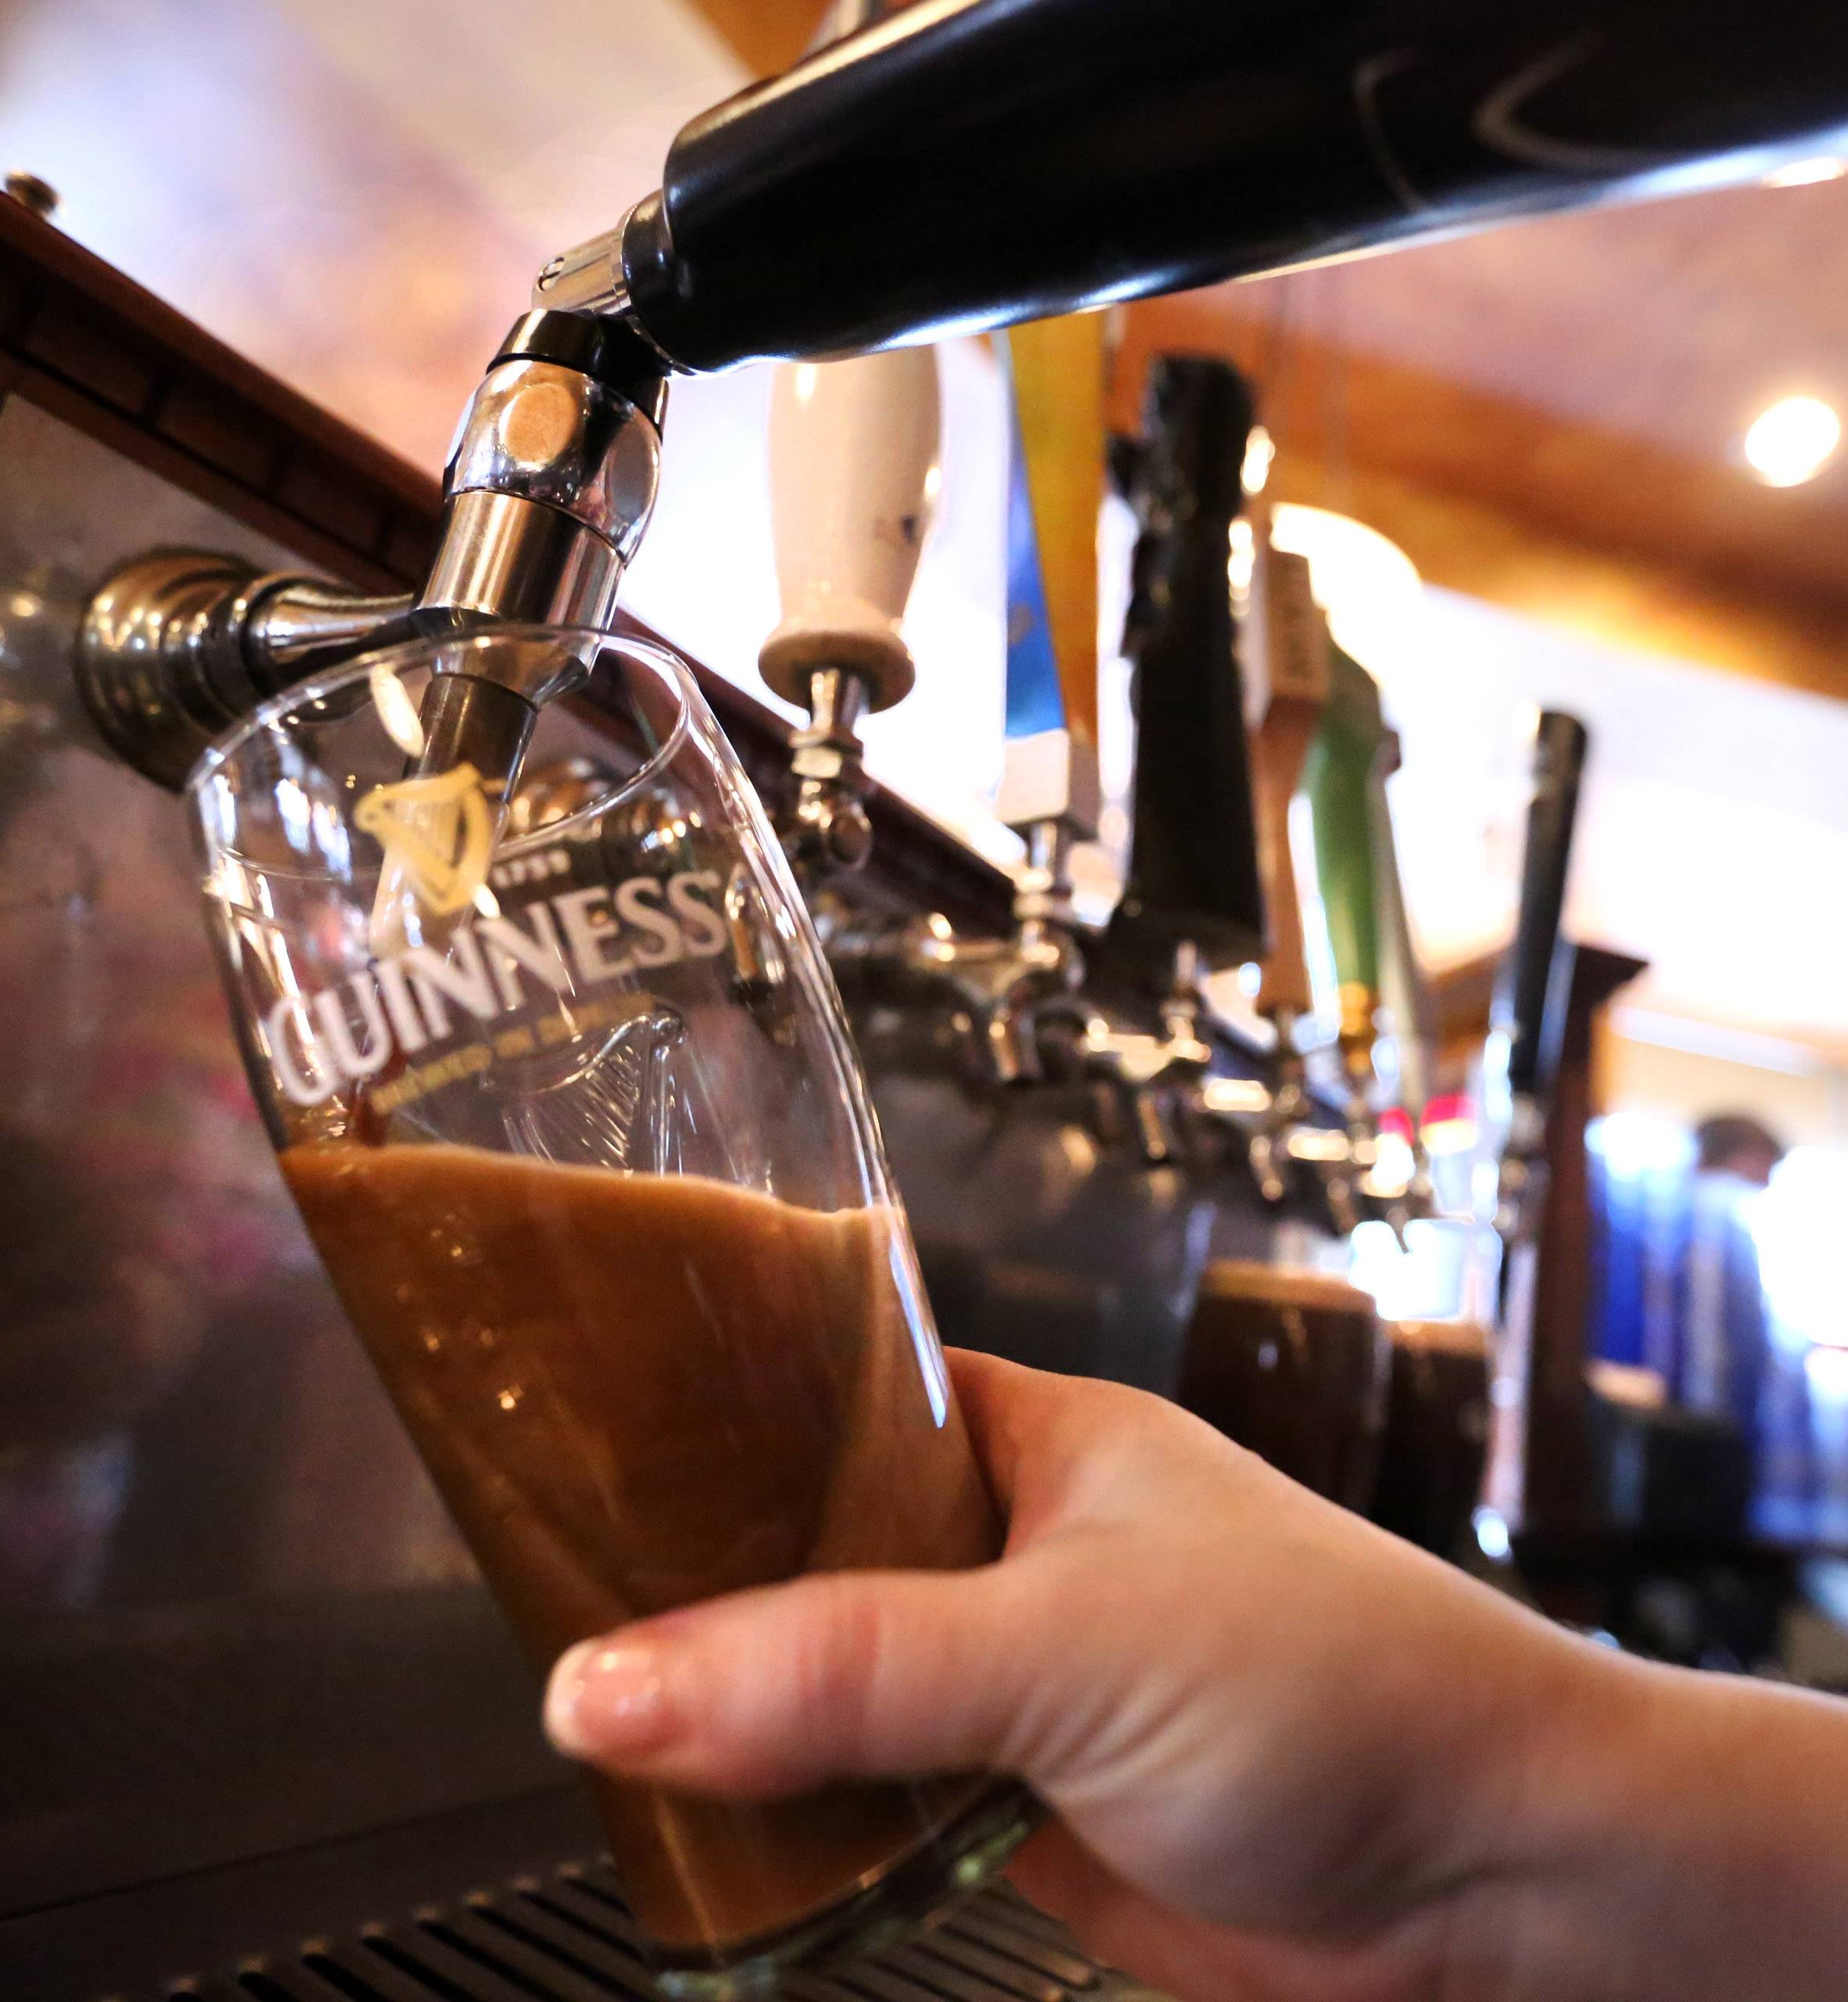 Guinness beer is a popular option for St. Patrick's Day at Peggy Kinnane's Irish Restaurant and Pub in Arlington Heights.